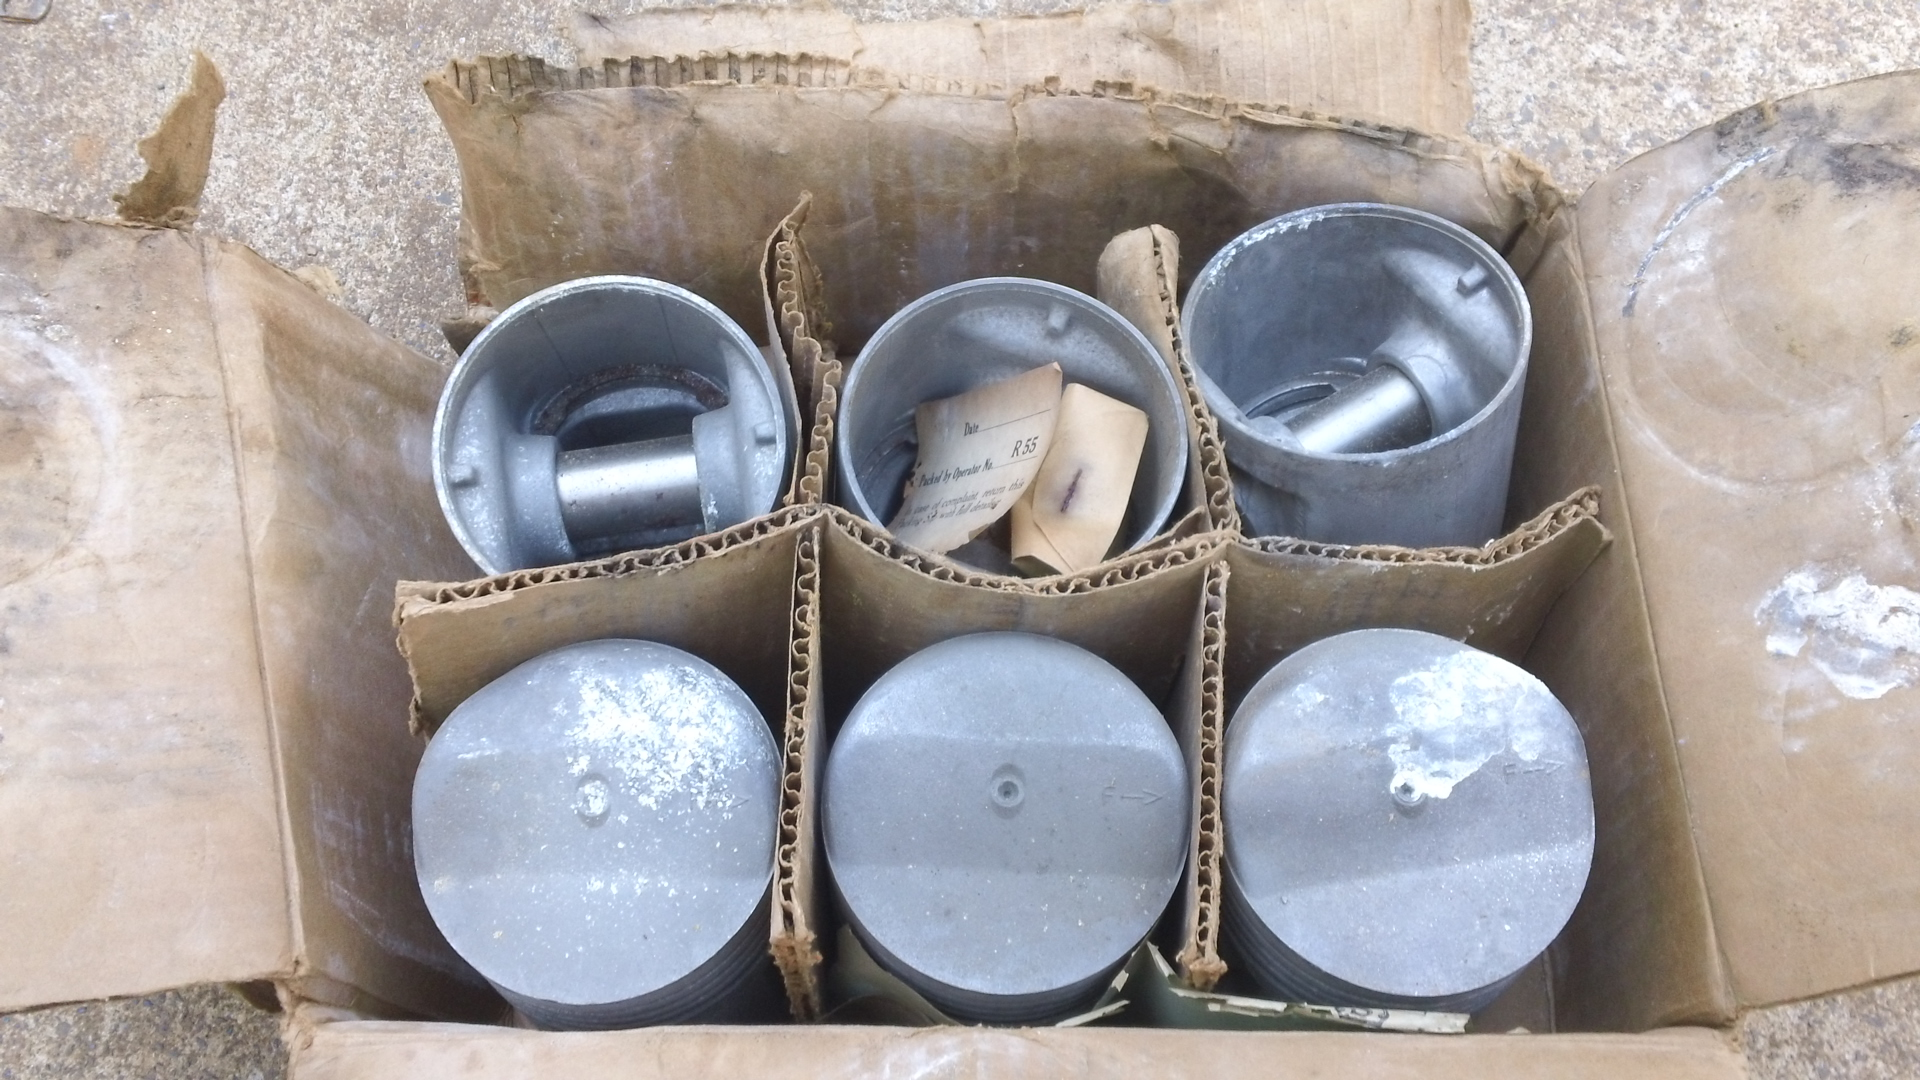 Find NORS 1941 1942 1943 1944 1945 1946 1947 1948 1949 1950 1951 1952 GMC piston set motorcycle